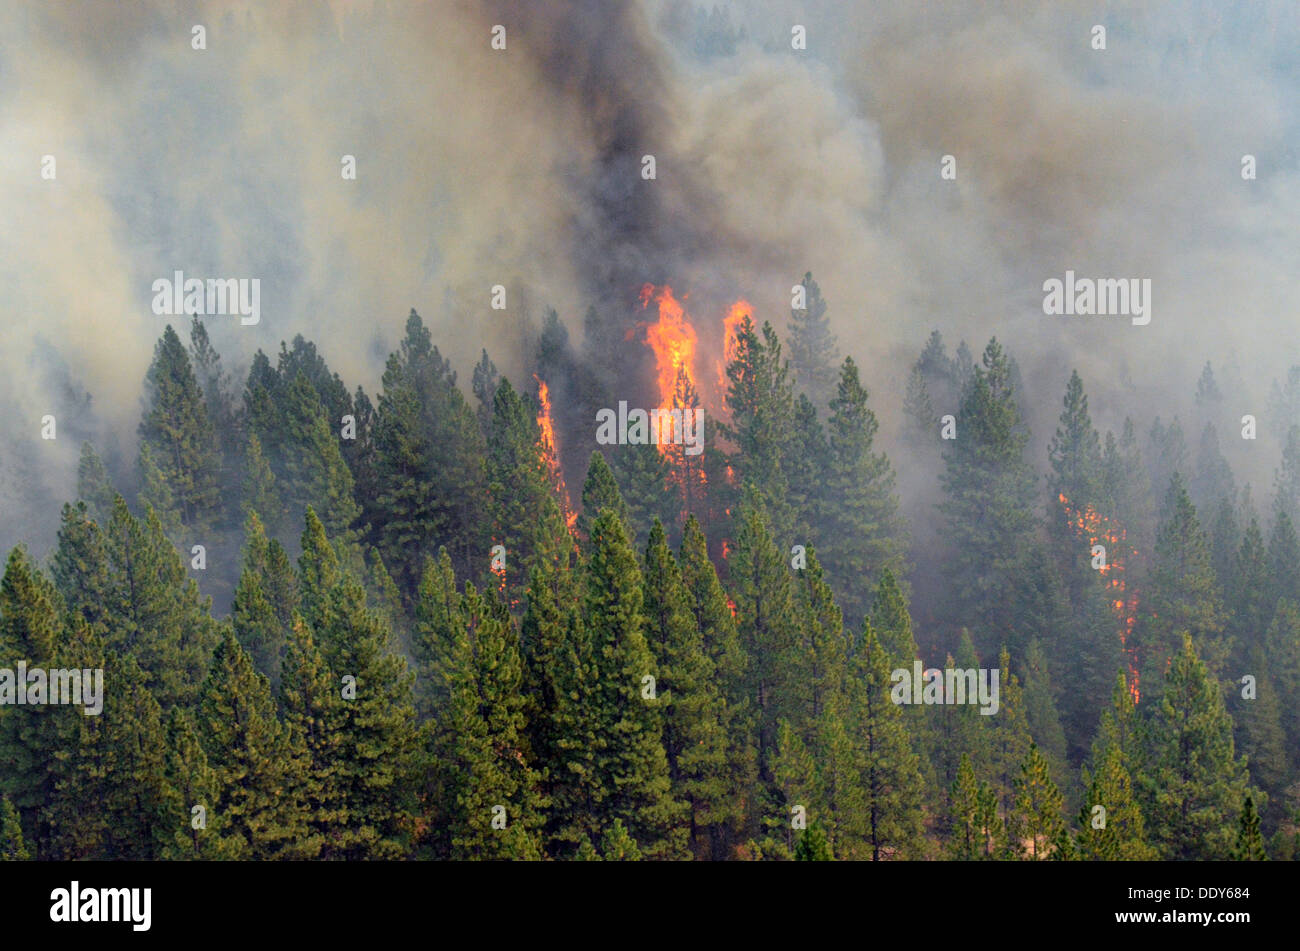 Flames and smoke from the Rim Fire continues to burn forest August 29, 2013 near Yosemite, CA. - Stock Image